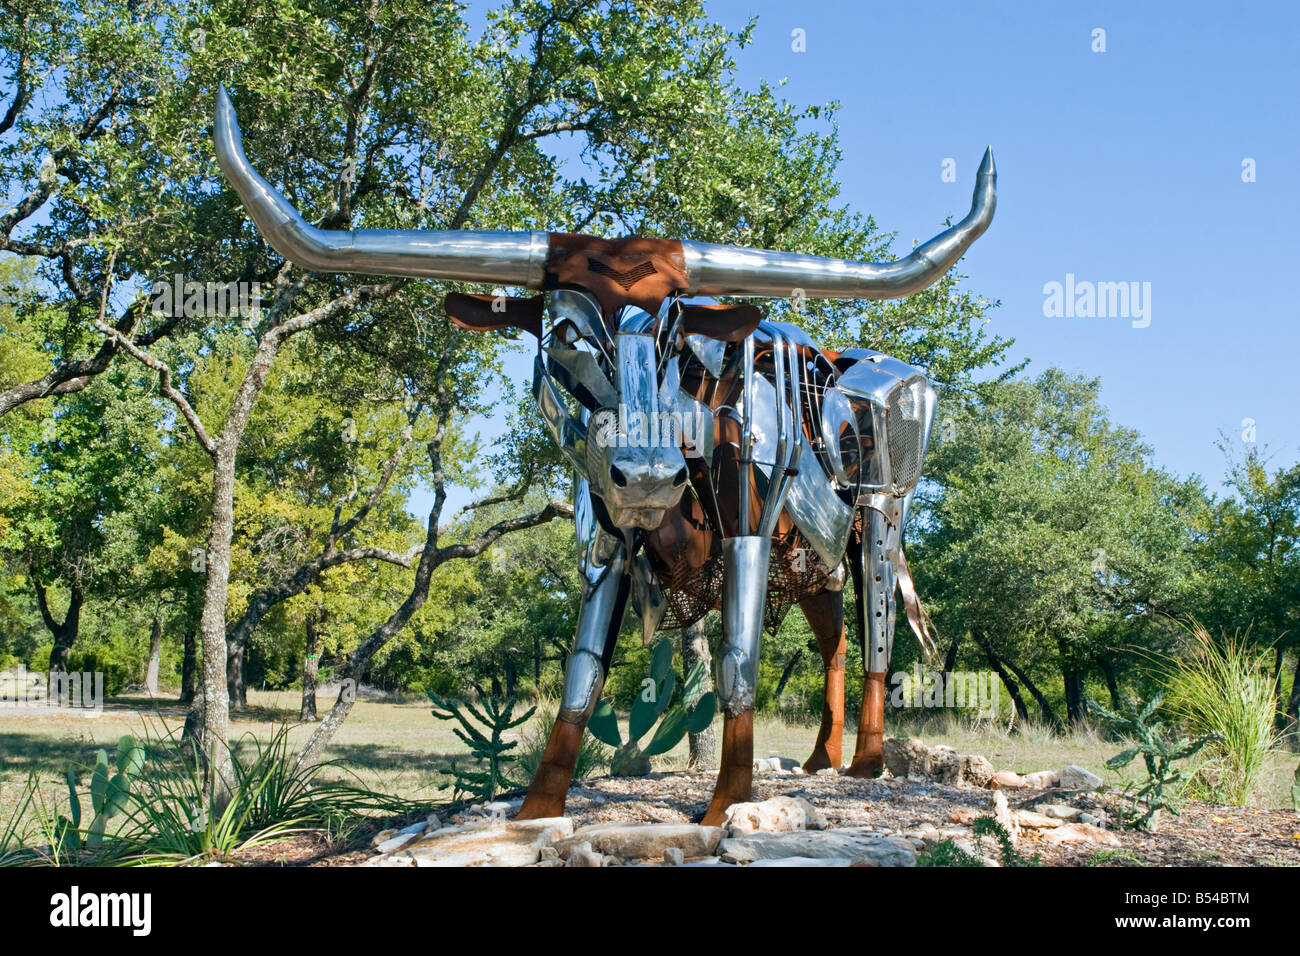 Statue of longhorn steer constructed of automobile body parts Stock Photo